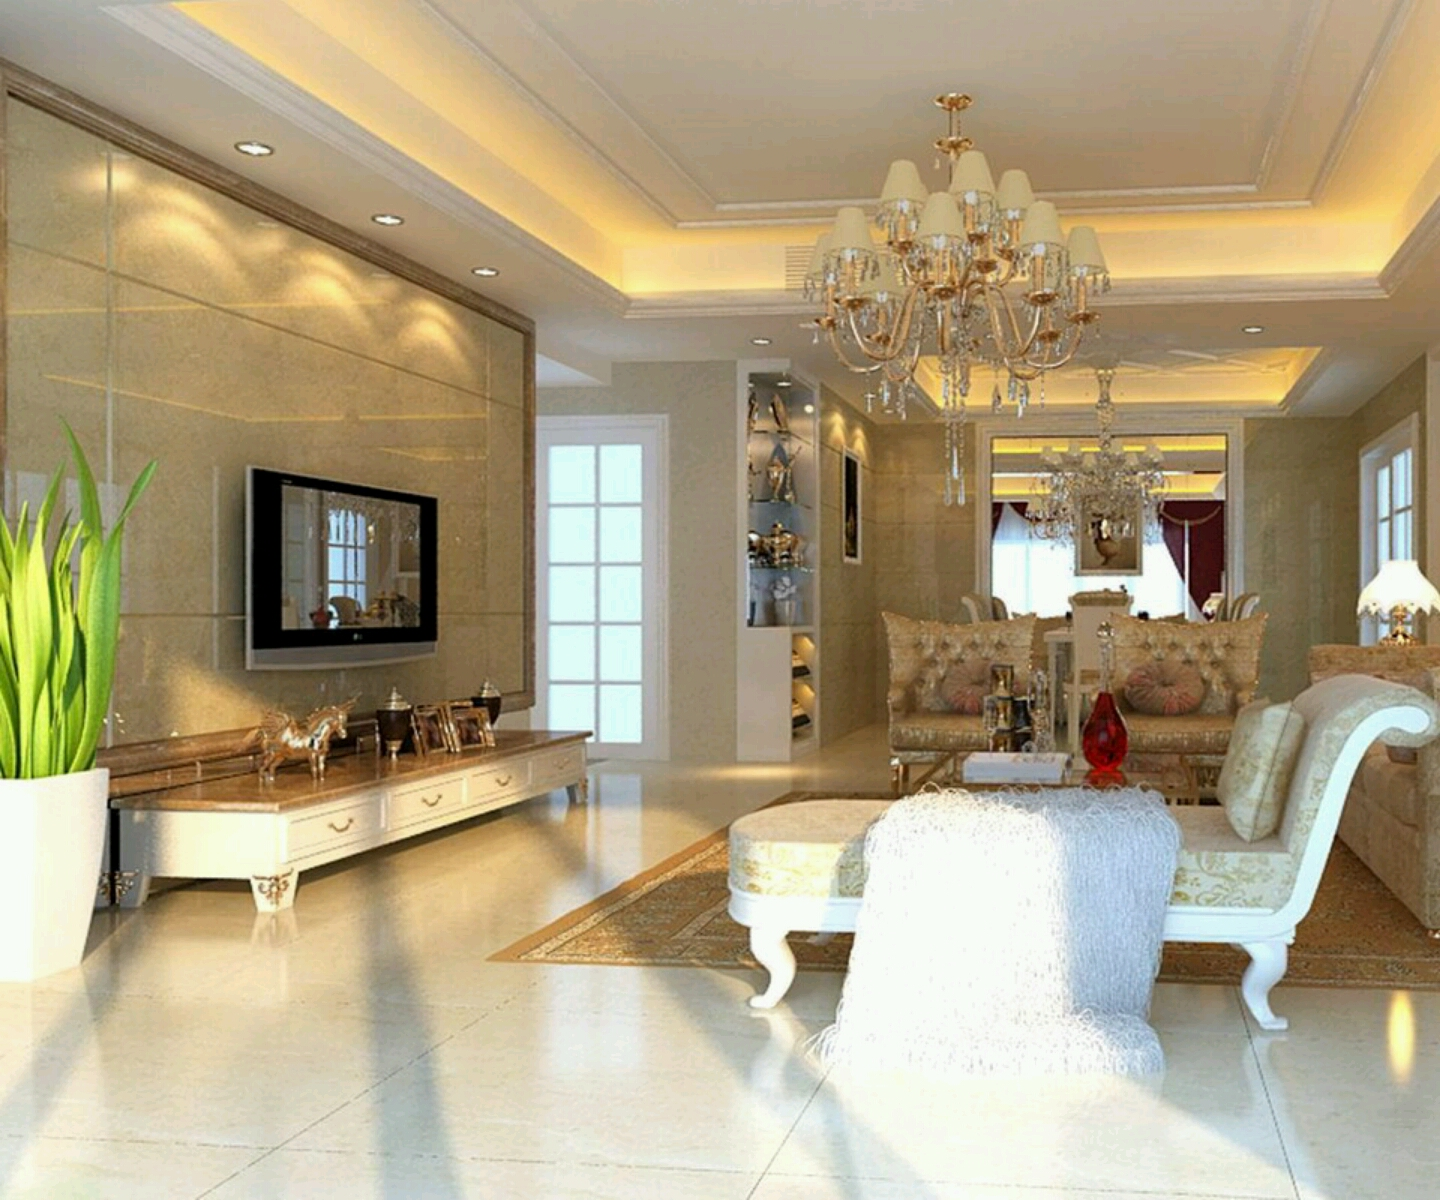 New home designs latest luxury homes interior decoration Luxury house plans with photos of interior